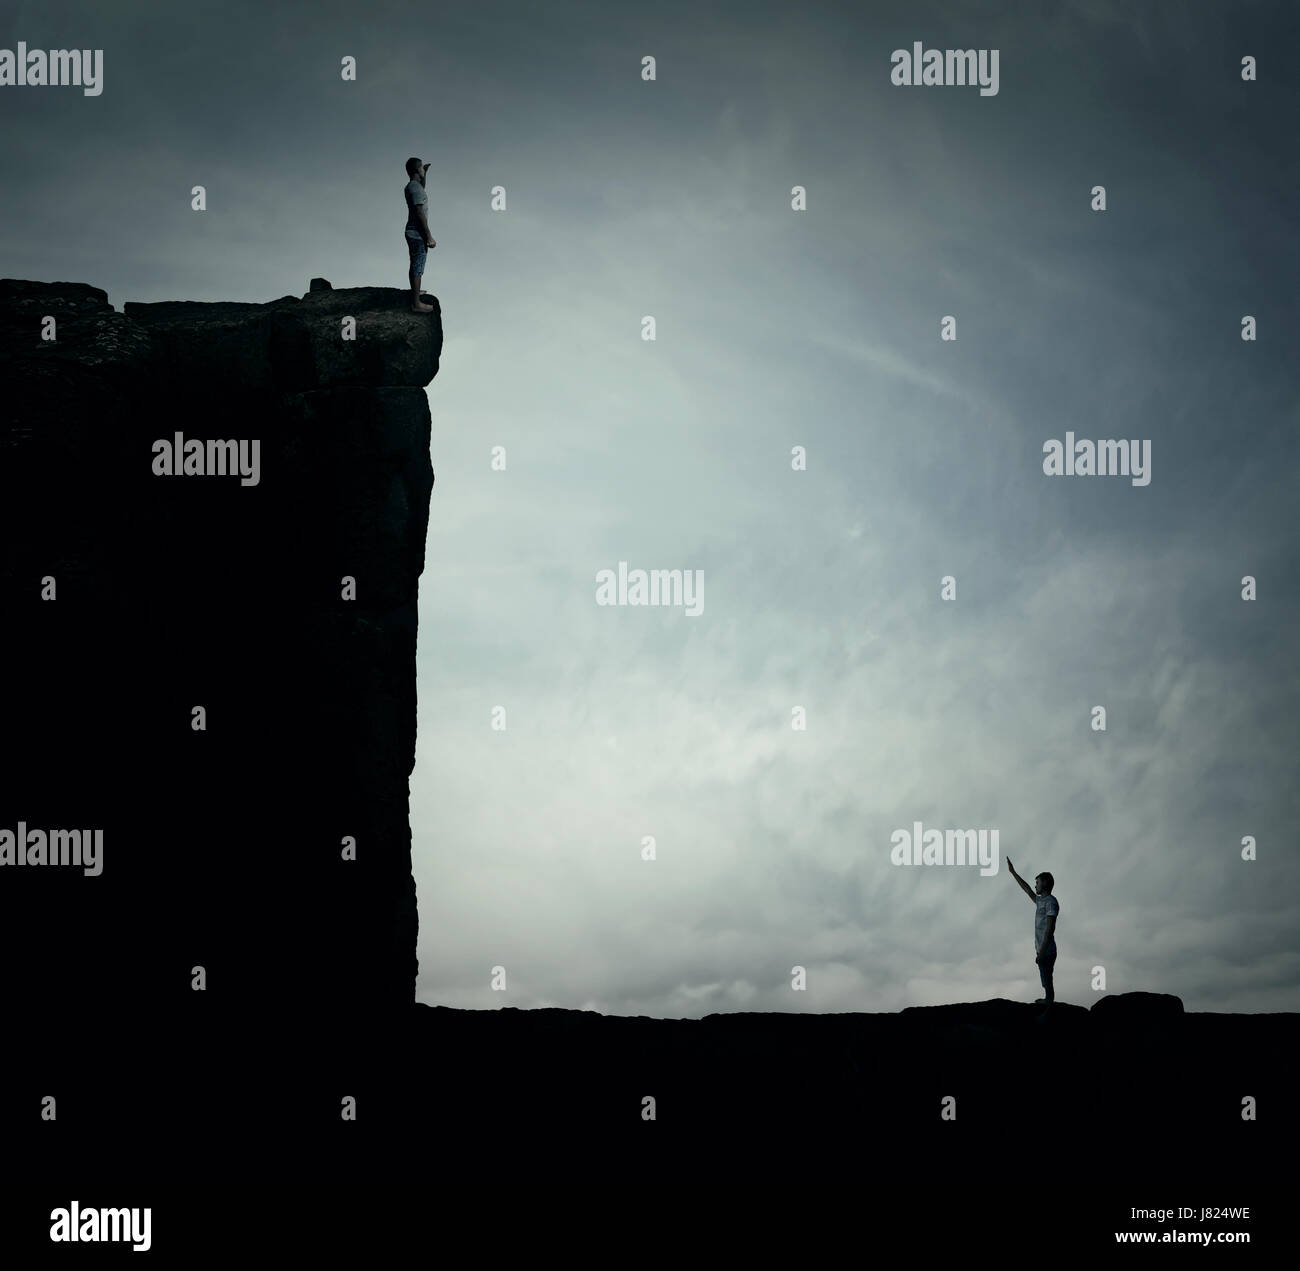 Conceptual image with two lost persons standing on a cliff at different hights, trying to find each other. Parallel Stock Photo